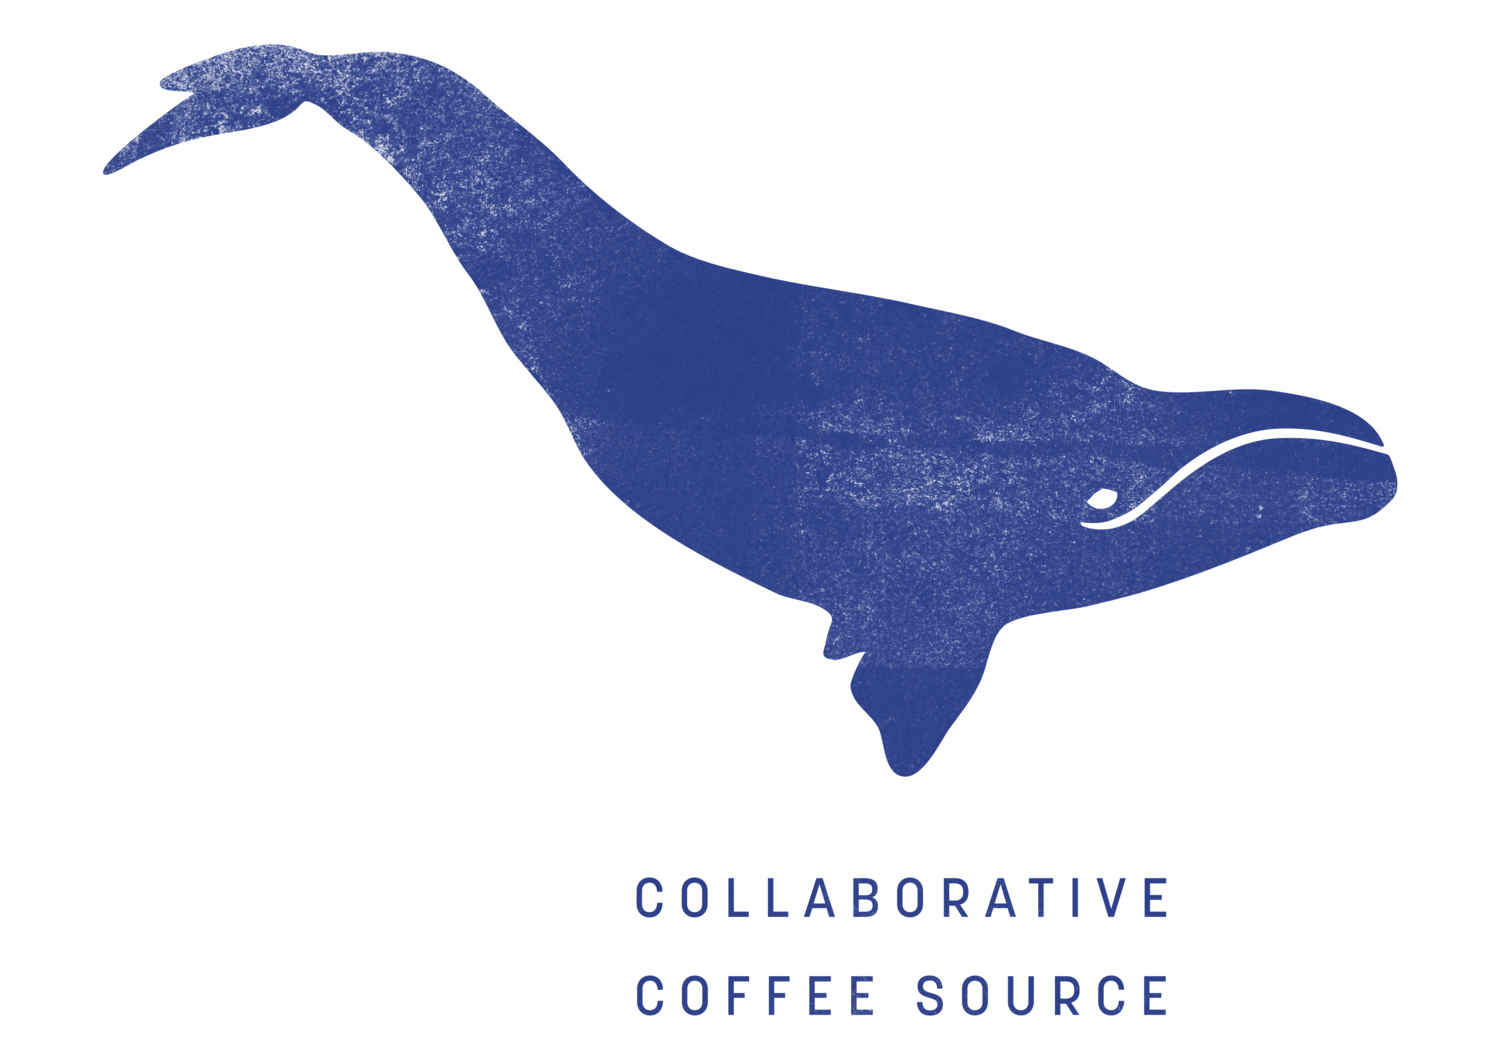 Collaborative Coffee Source